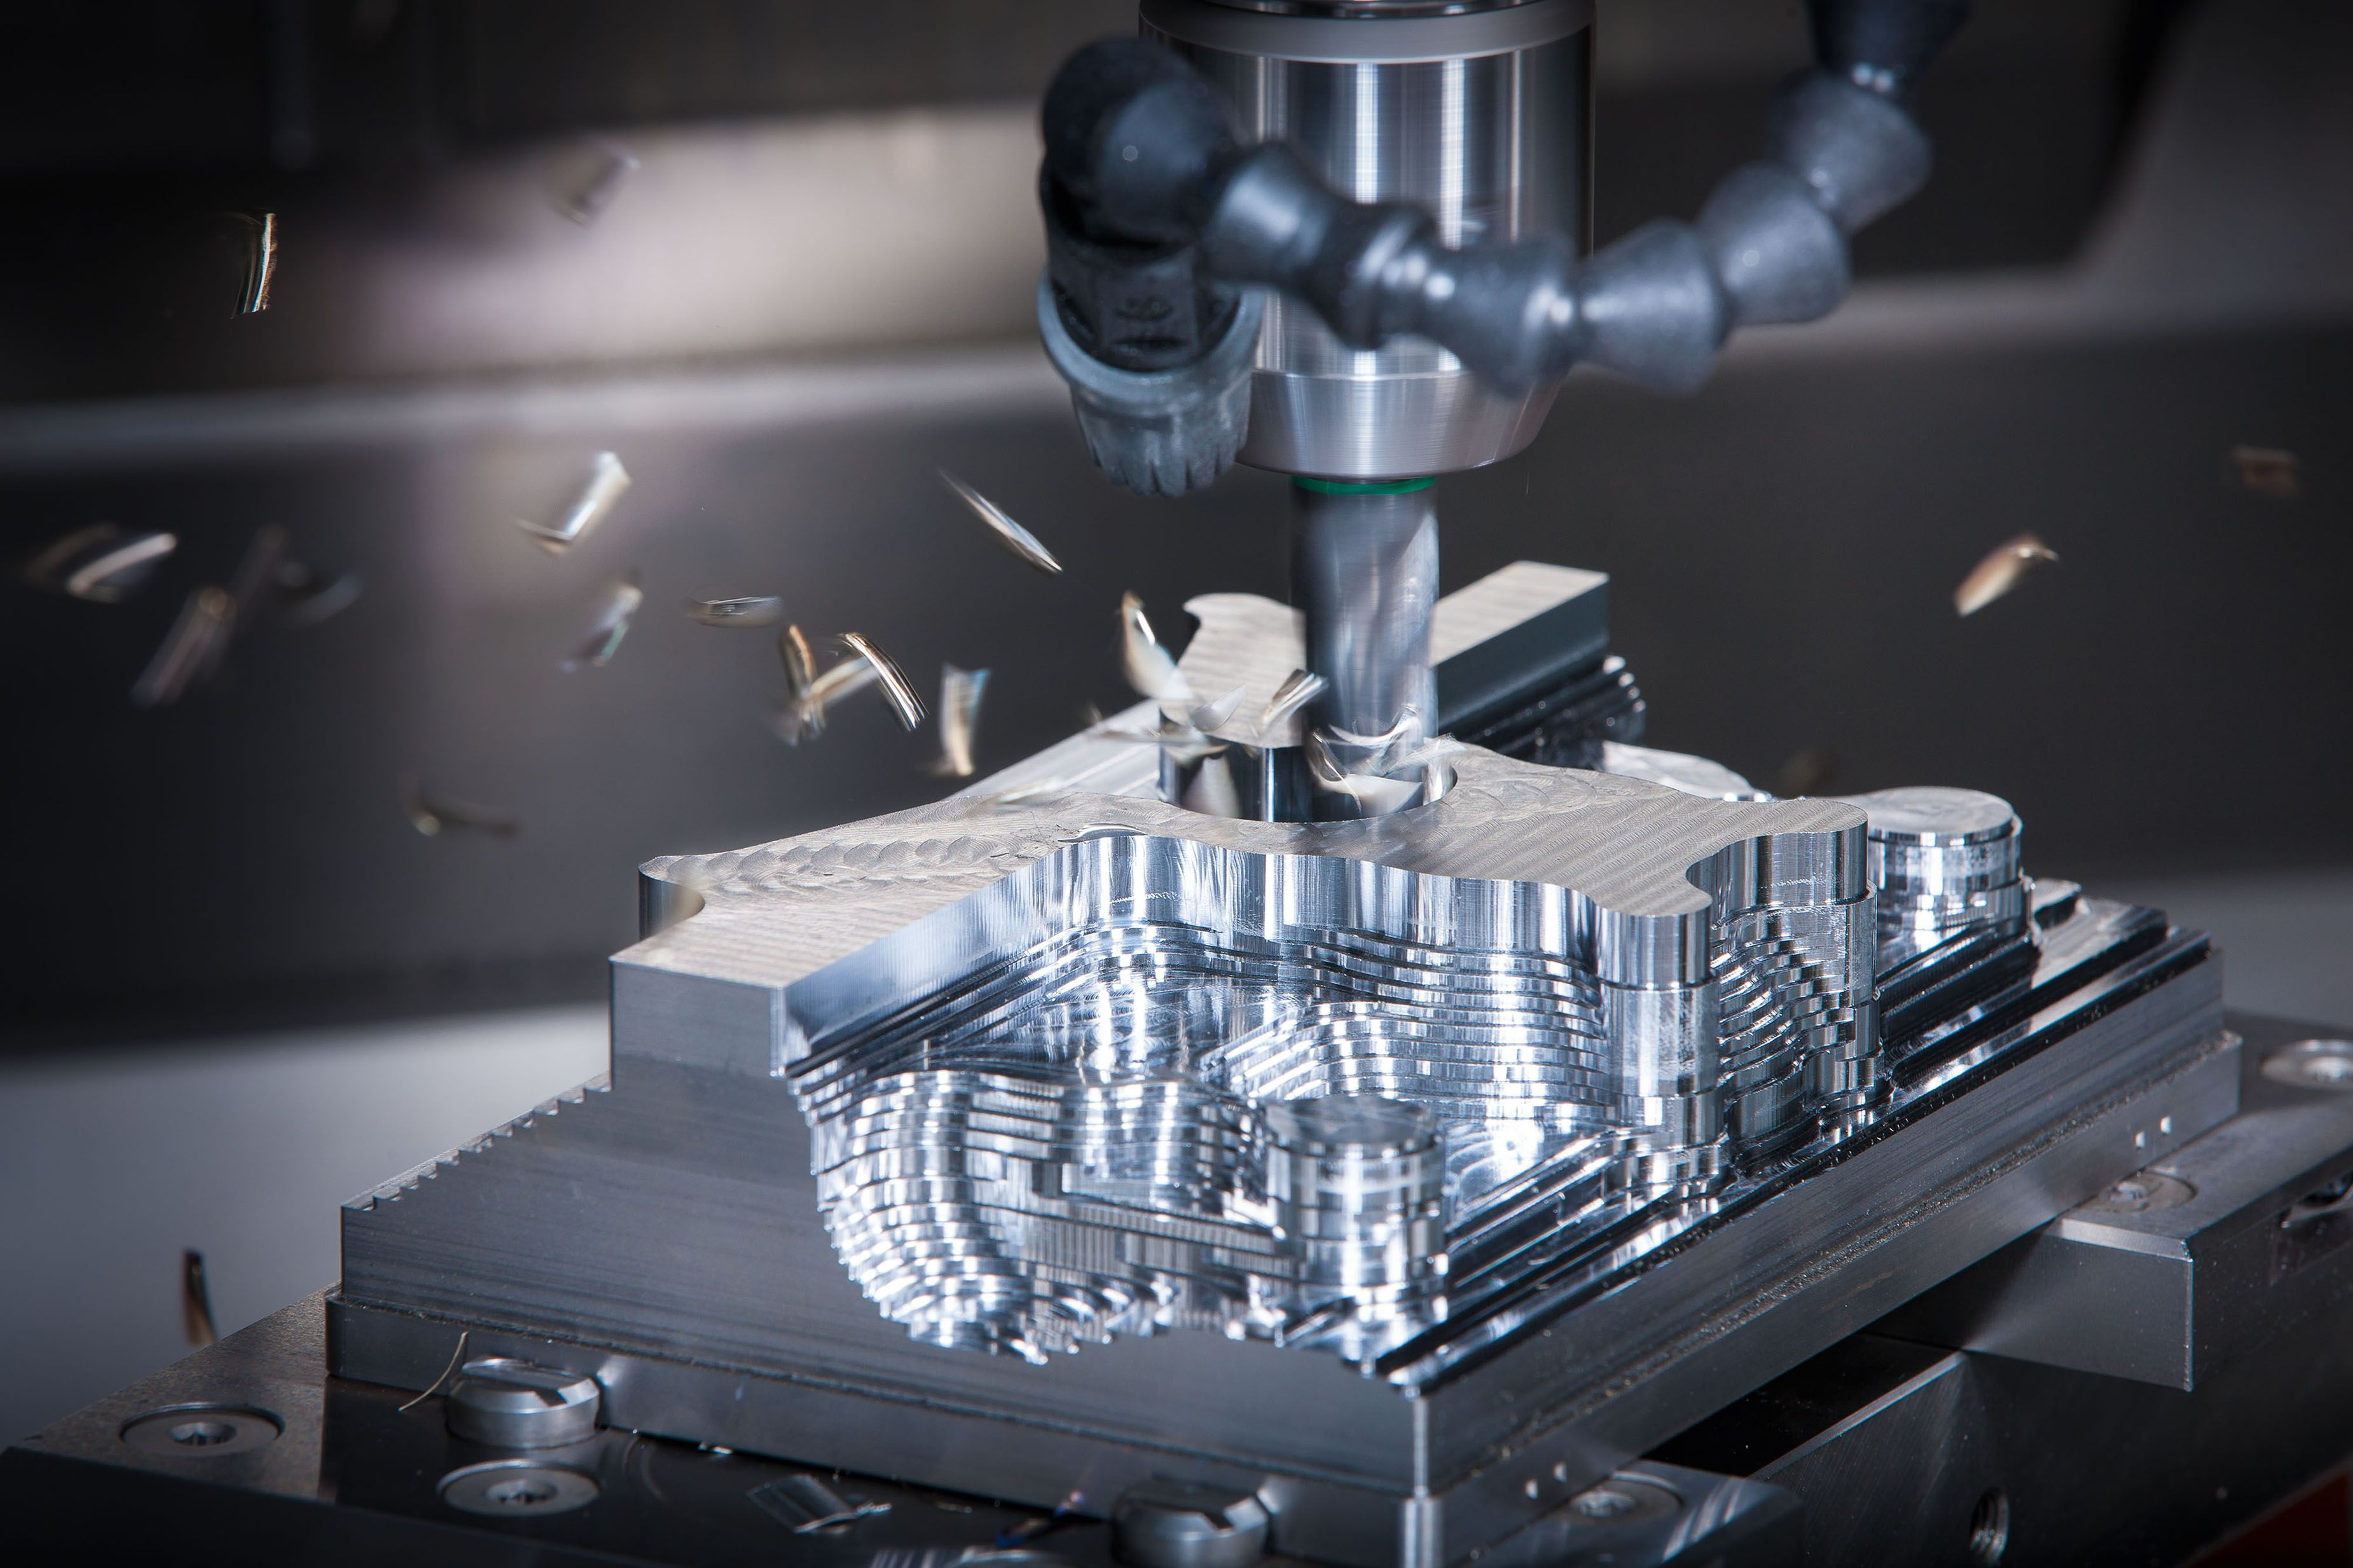 CNC Machining China is done by prototyping companies which